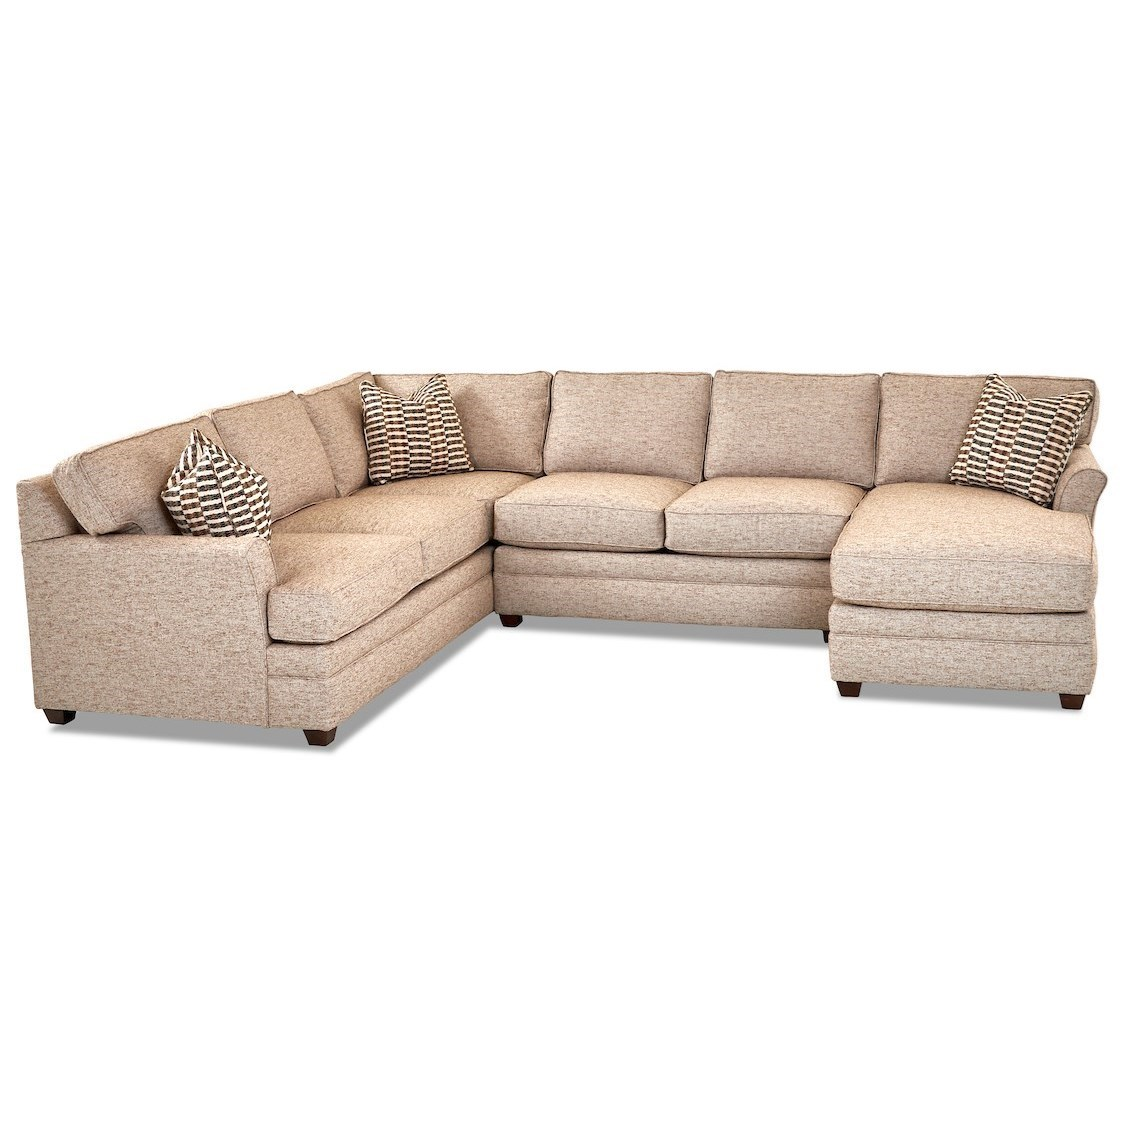 Living Your Way 3-Piece Sectional Sofa w/ RAF Chaise by Klaussner at Johnny Janosik